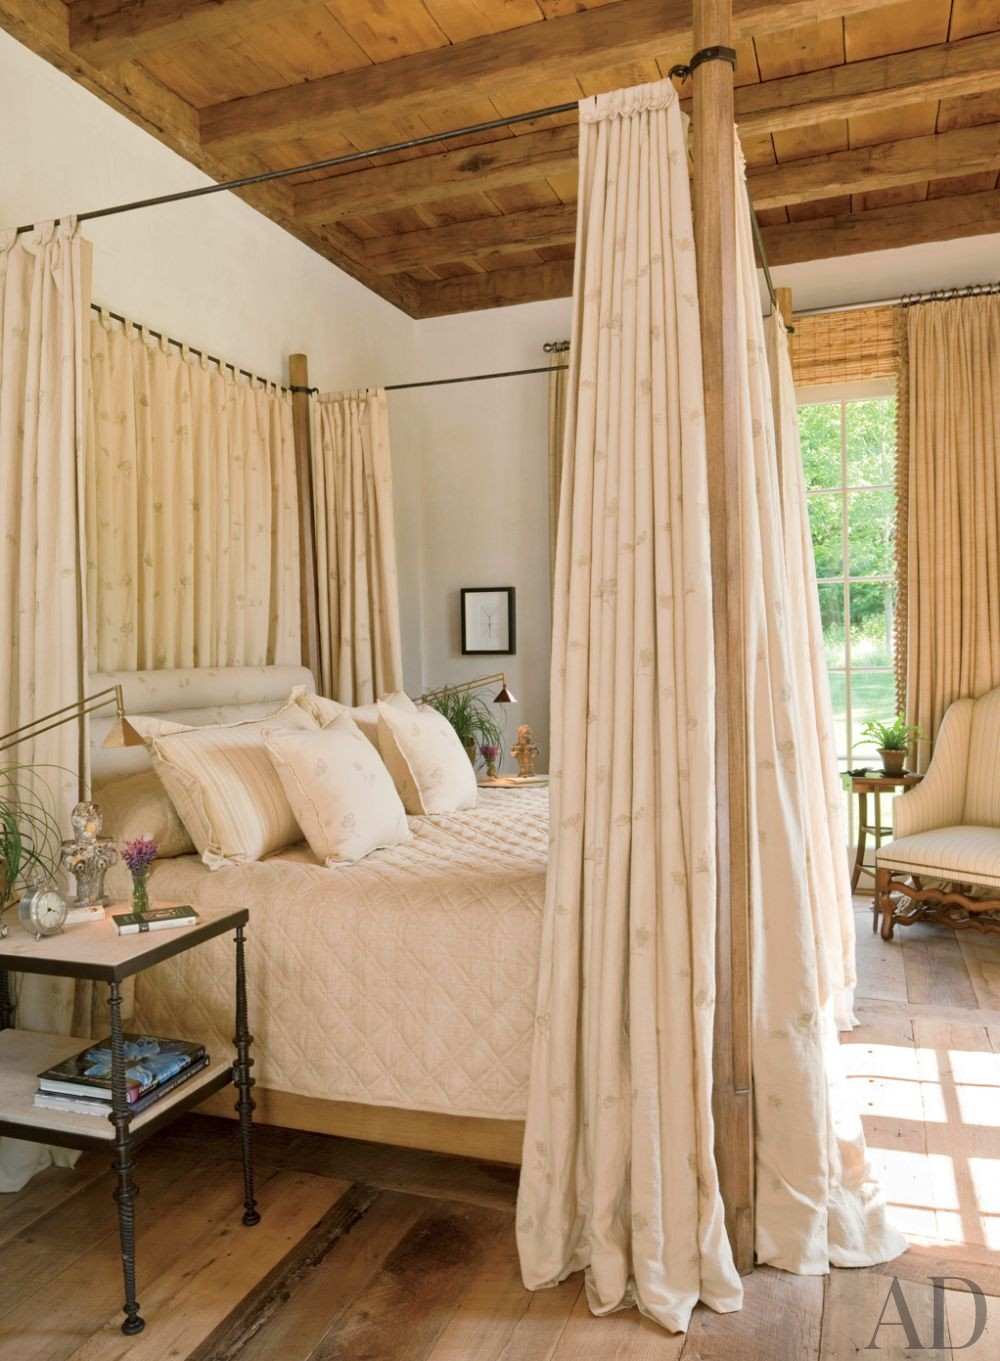 Rustic Bedroom by John Cottrell Co. and G. P. Schafer Architect in Litchfield County, Connecticut